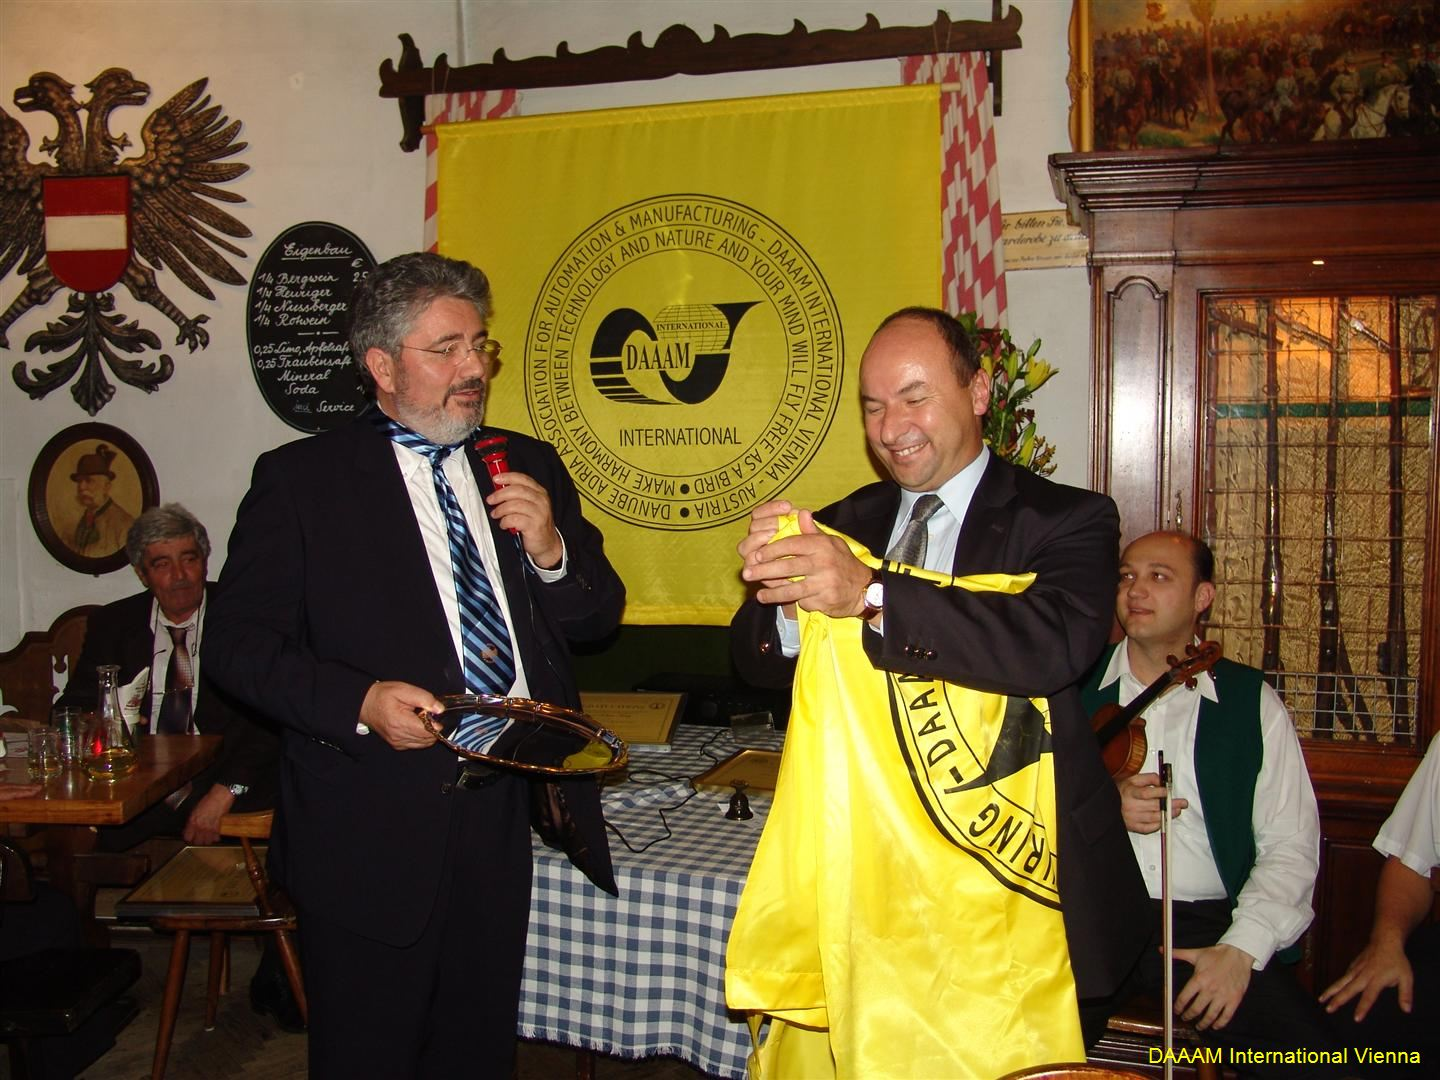 daaam_2006_vienna_dinner_recognitions_lectures_087